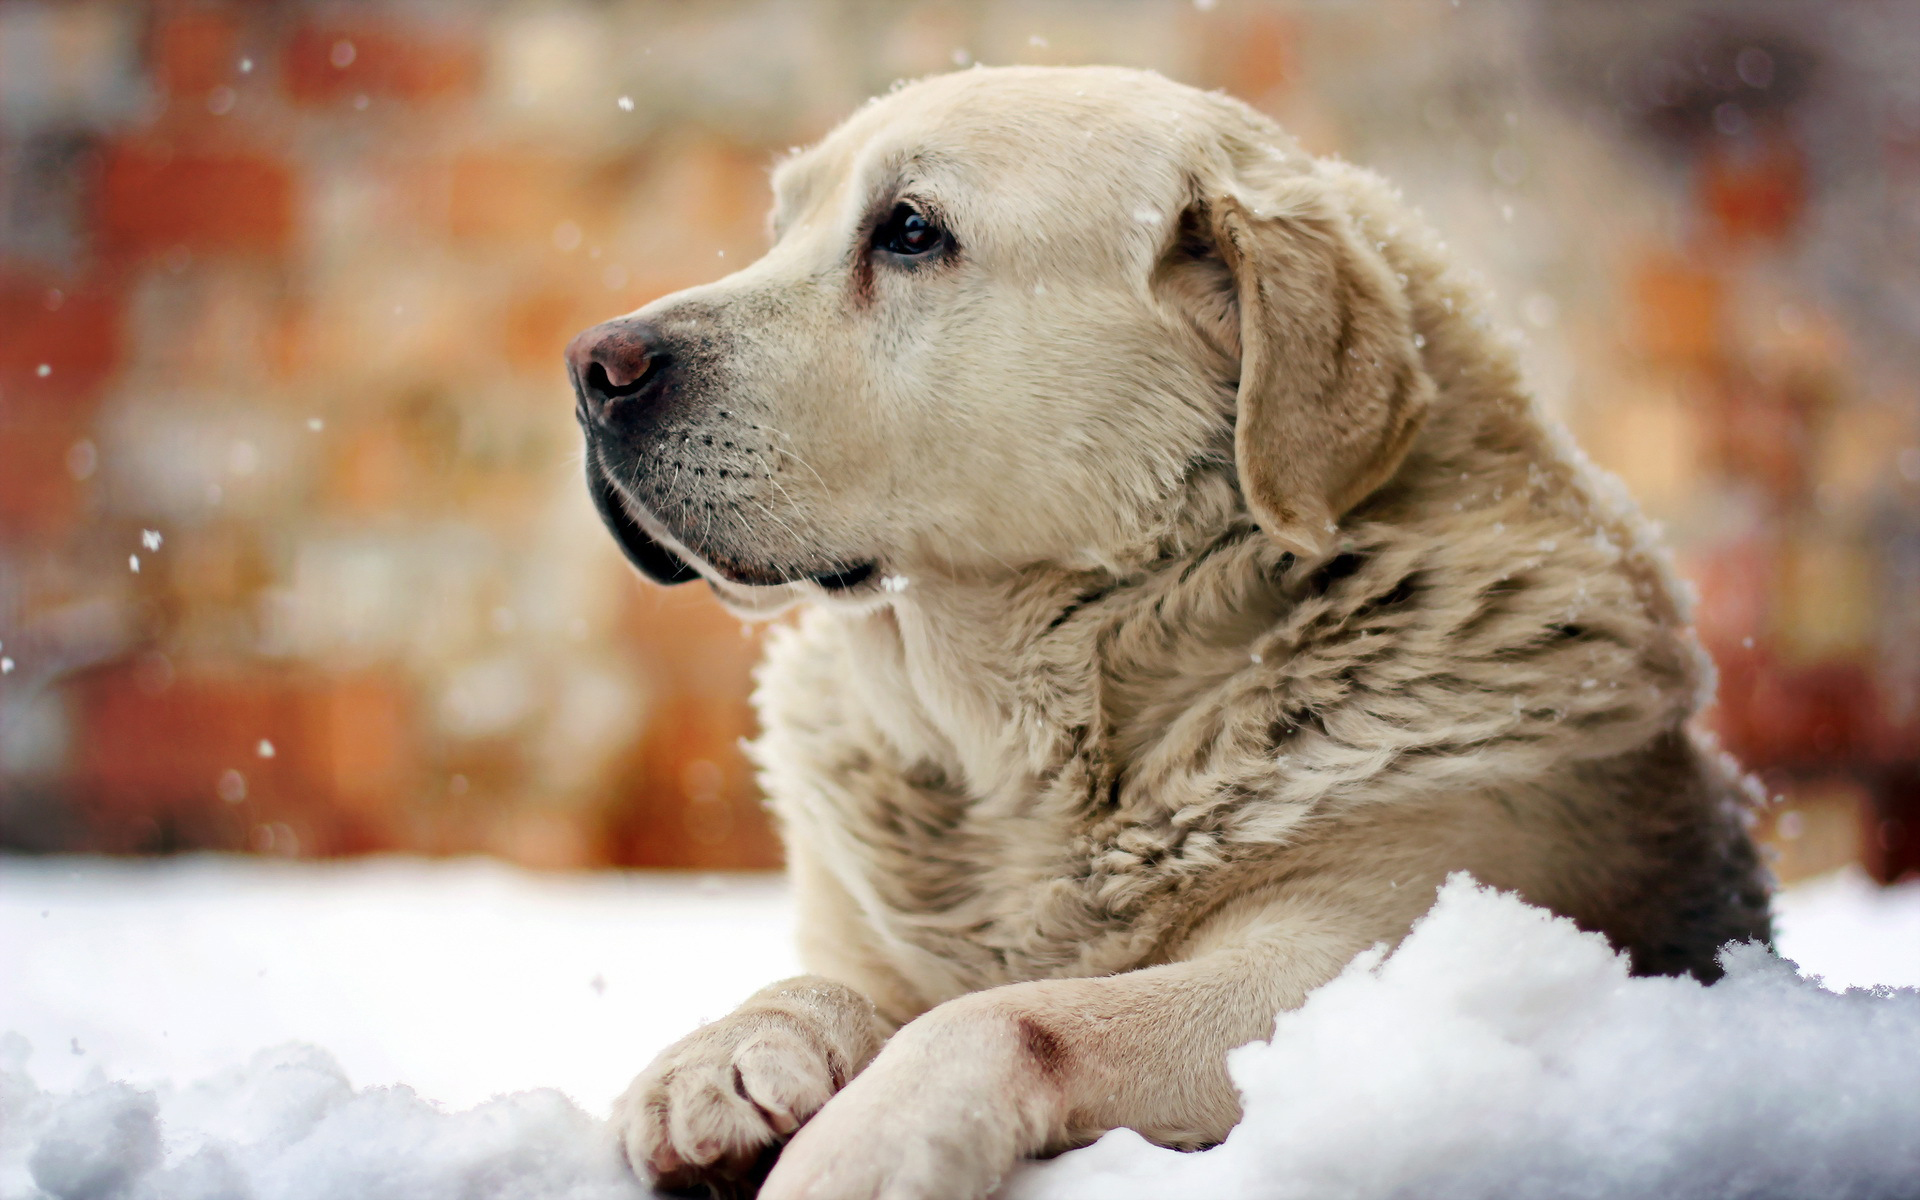 50222 download wallpaper Animals, Dogs screensavers and pictures for free